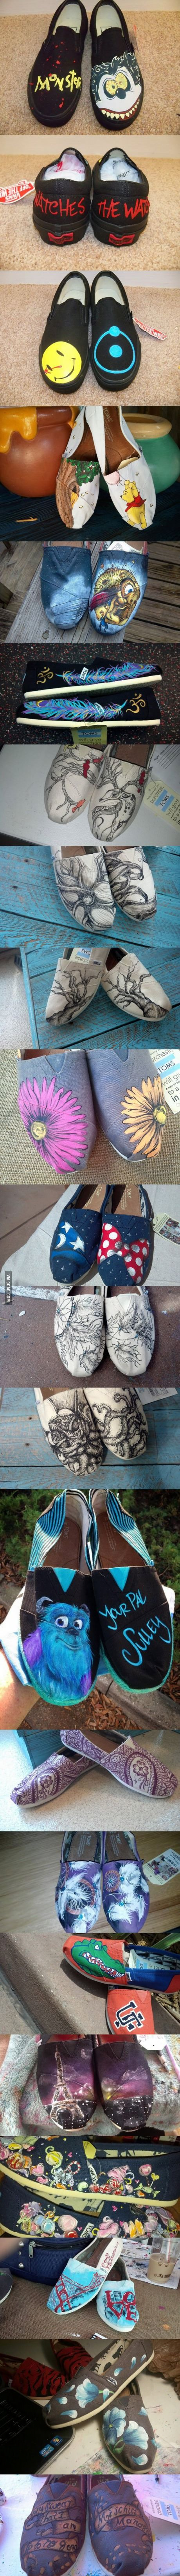 This girl paints shoes super talented plus i love her disney shoes